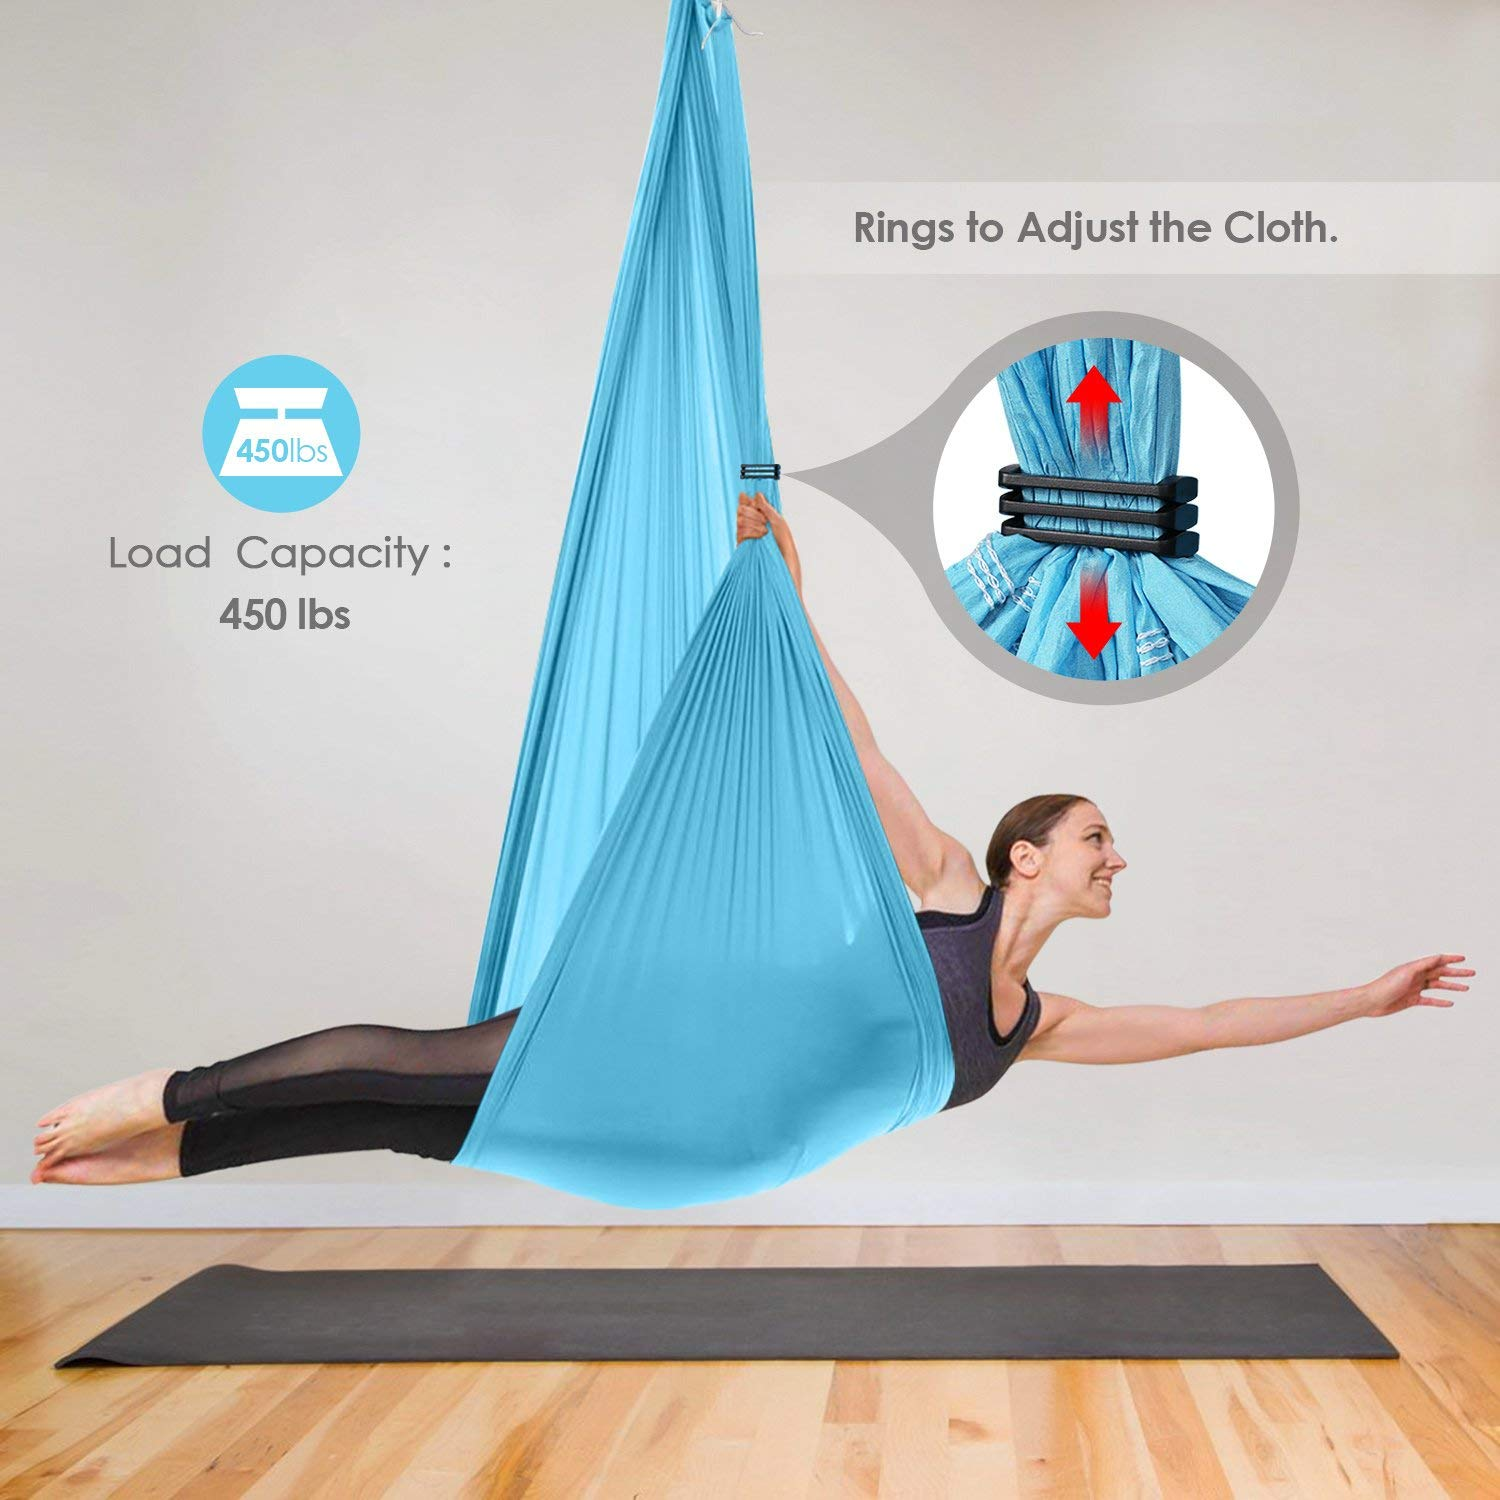 Amazon.com: INTEY - Hamaca de yoga volando para yoga ...